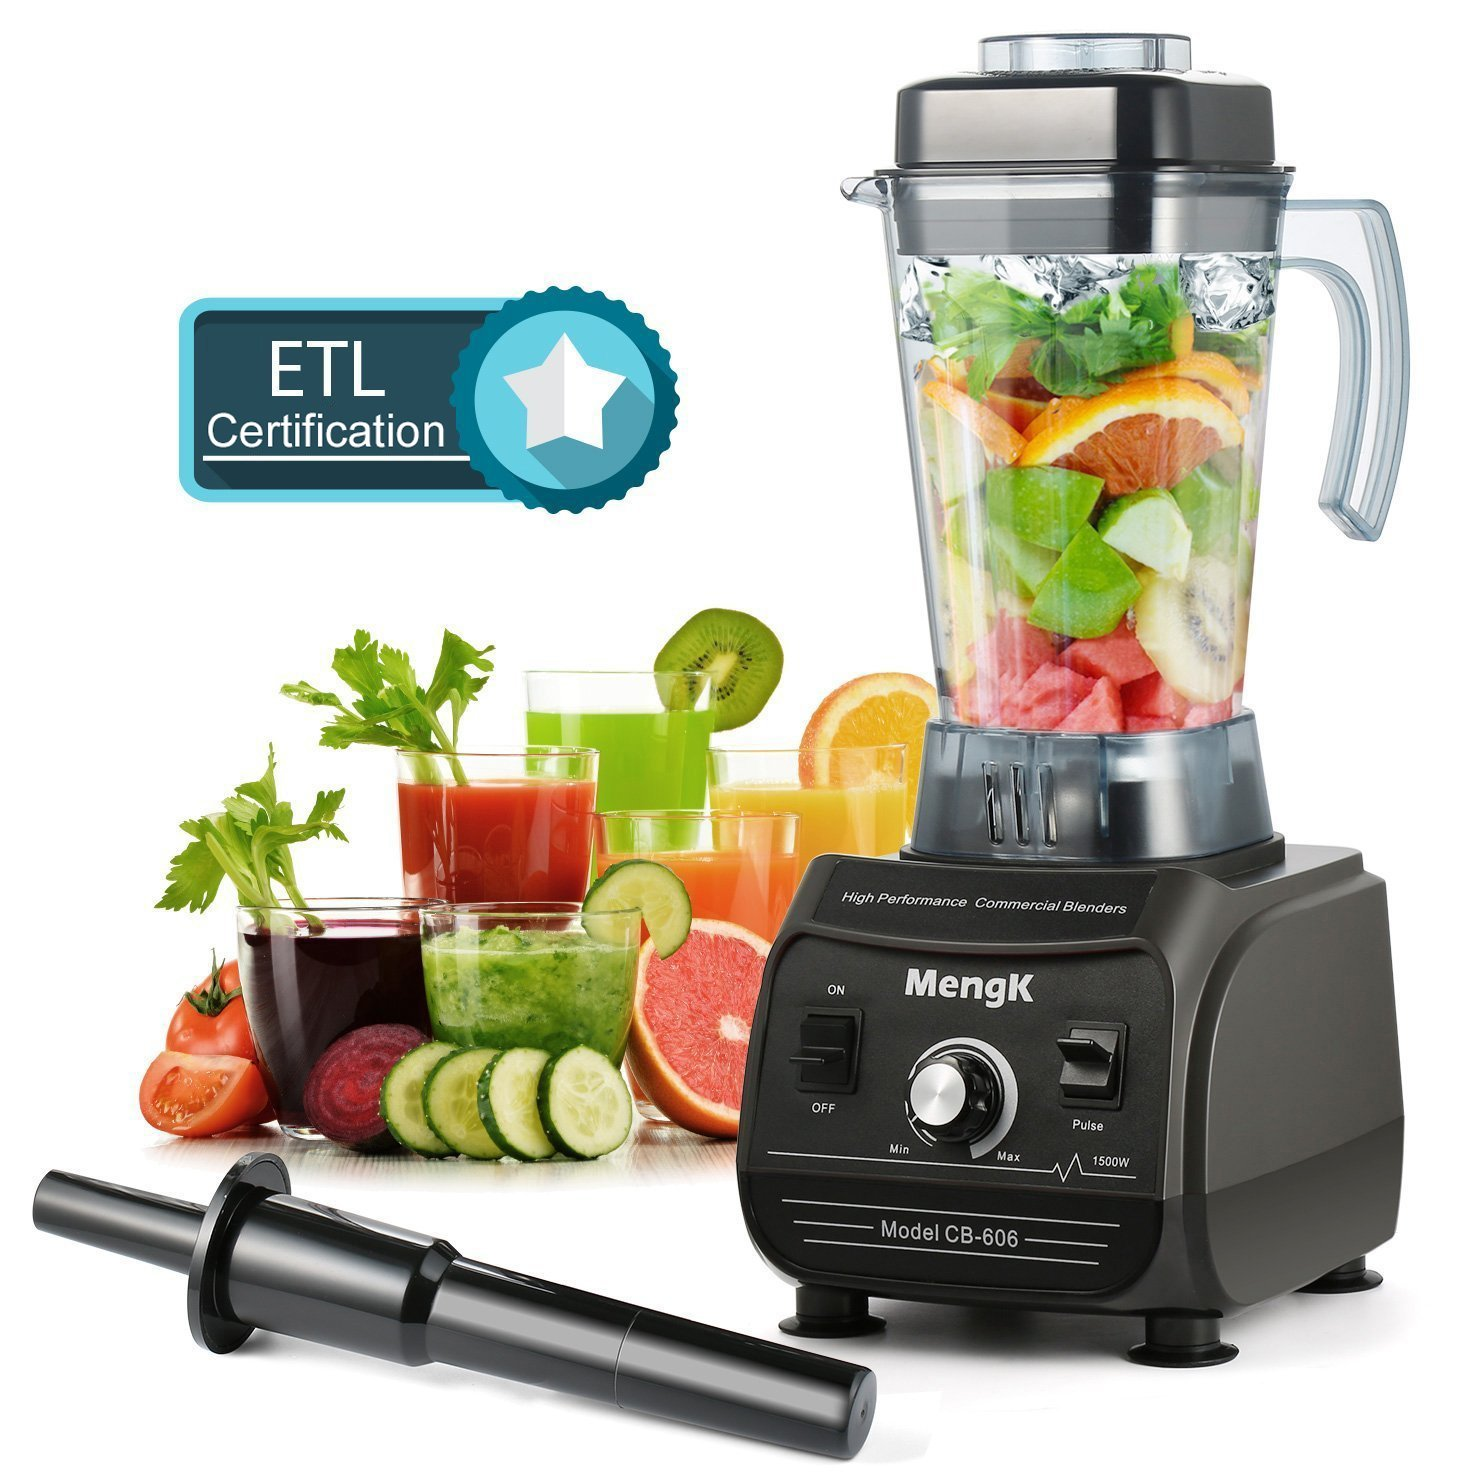 MengK Smoothies Blender 1500W min-2000W max, Professional Commercial Blenders for making Smoothies with 67oz BPA-Free Pitcher, kitchen Nutrition blender and food processor for Ice,Fruits & Vegetables